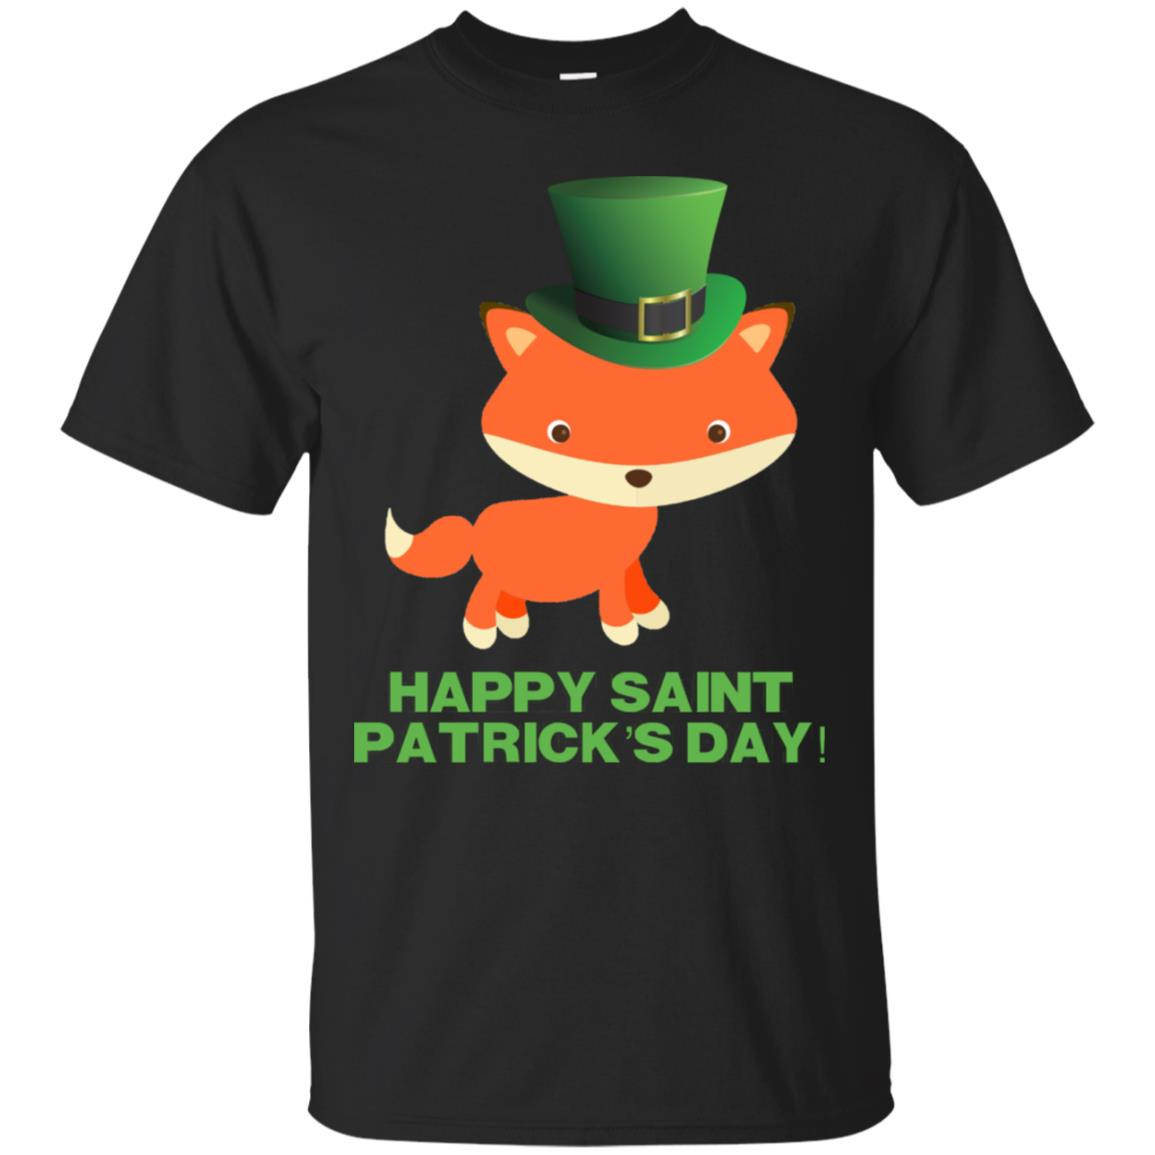 Cute St Patricks Day Fox Shirt for Kids Boy Girl Women & Men 99promocode